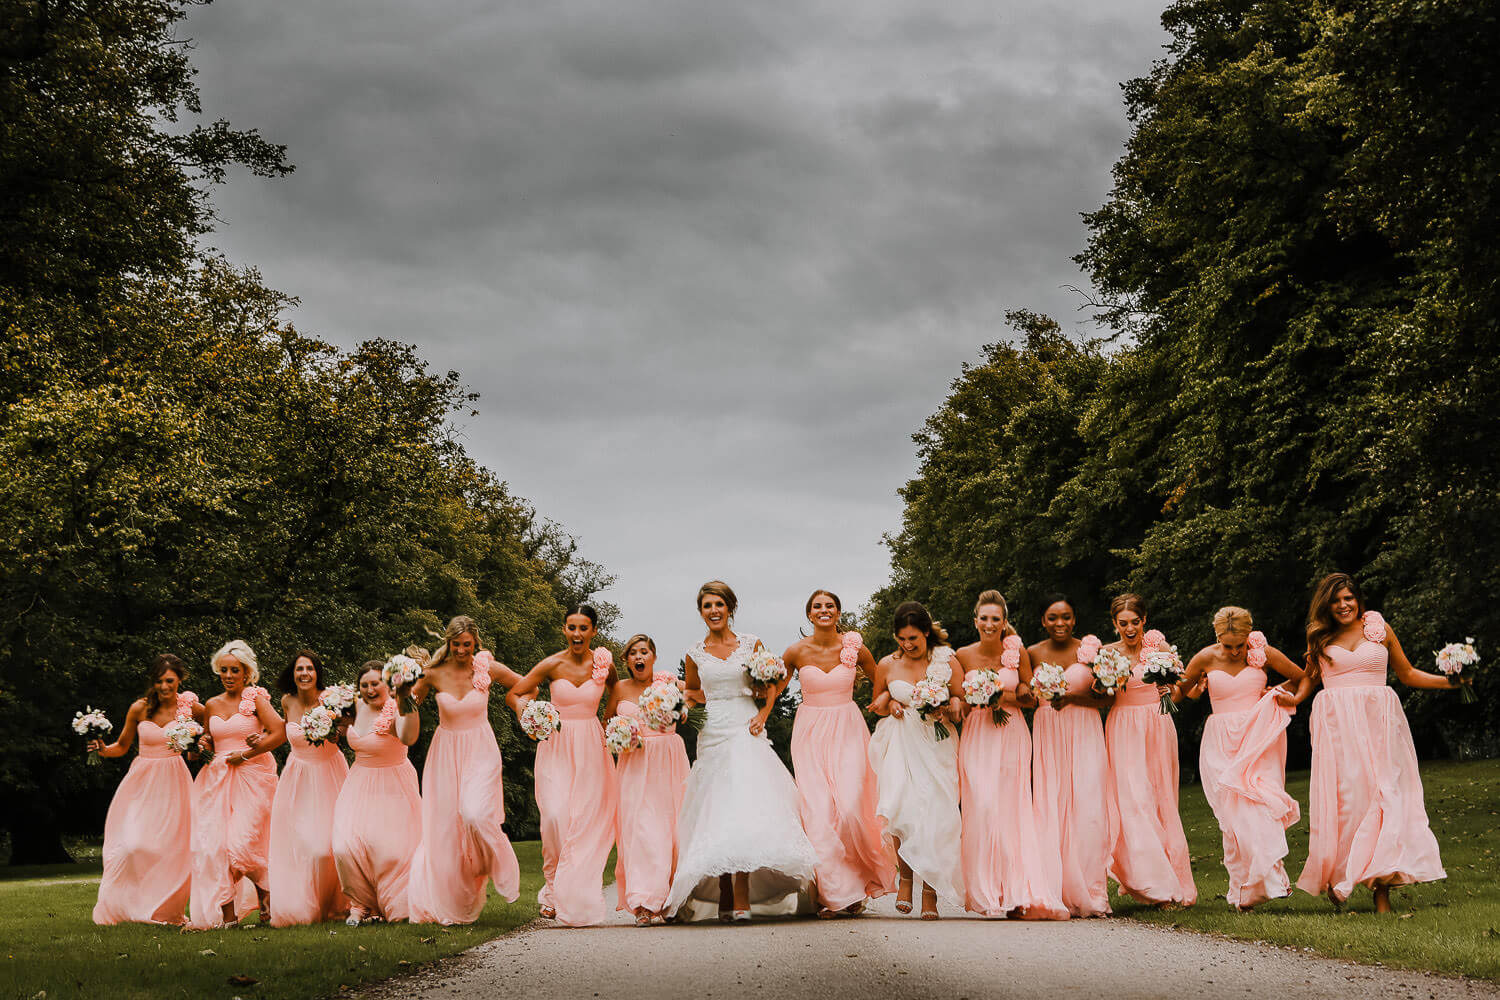 cost of wedding photography. Picture of bridesmaids running